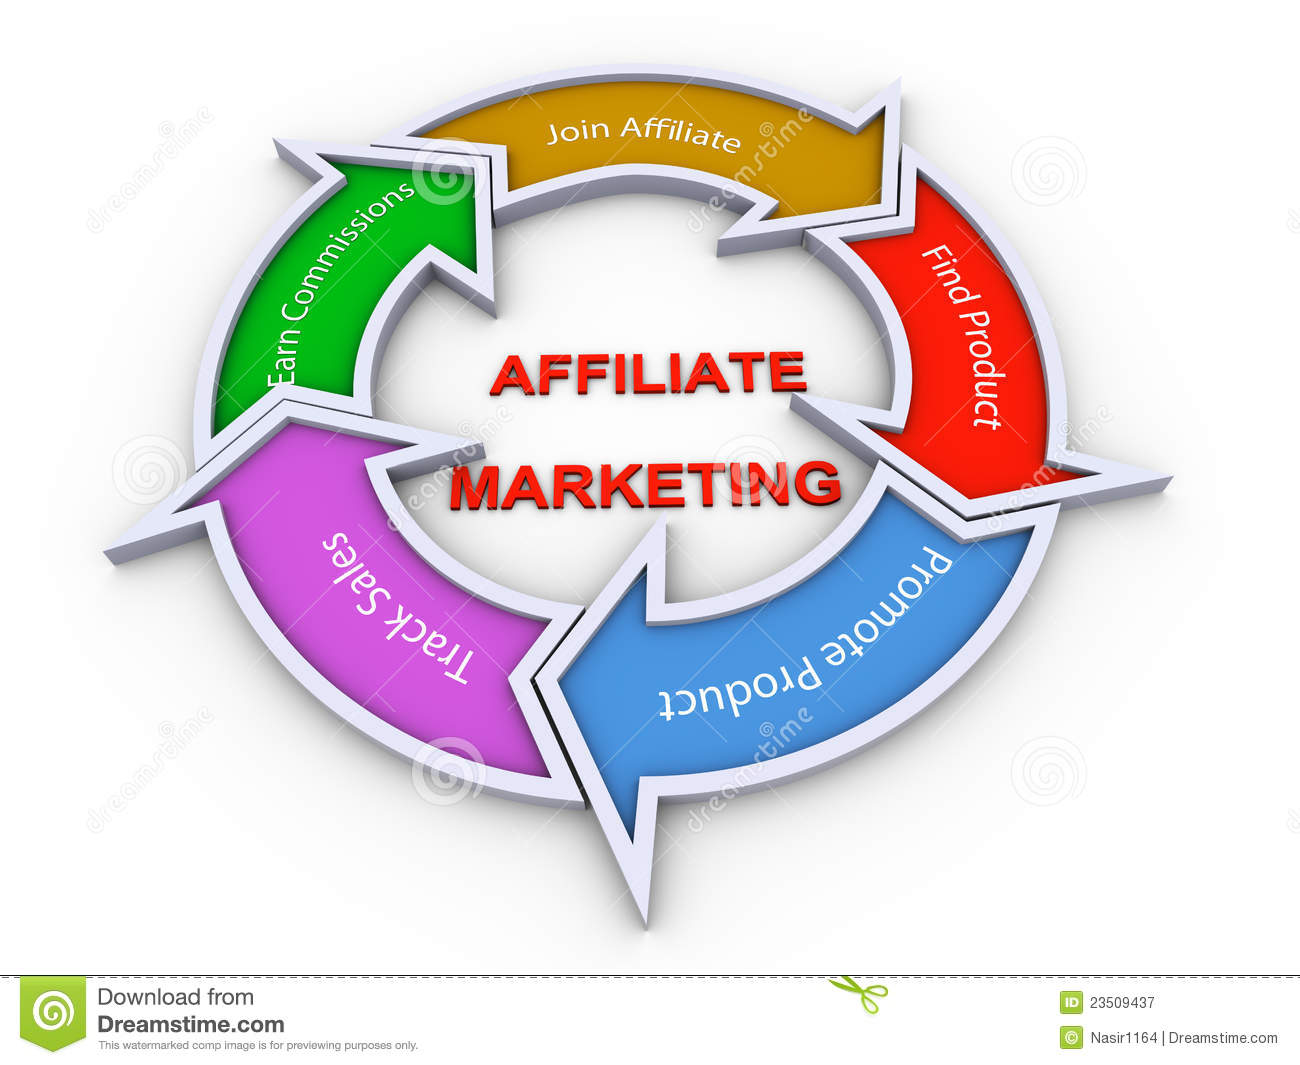 Free affiliate marketing software uk